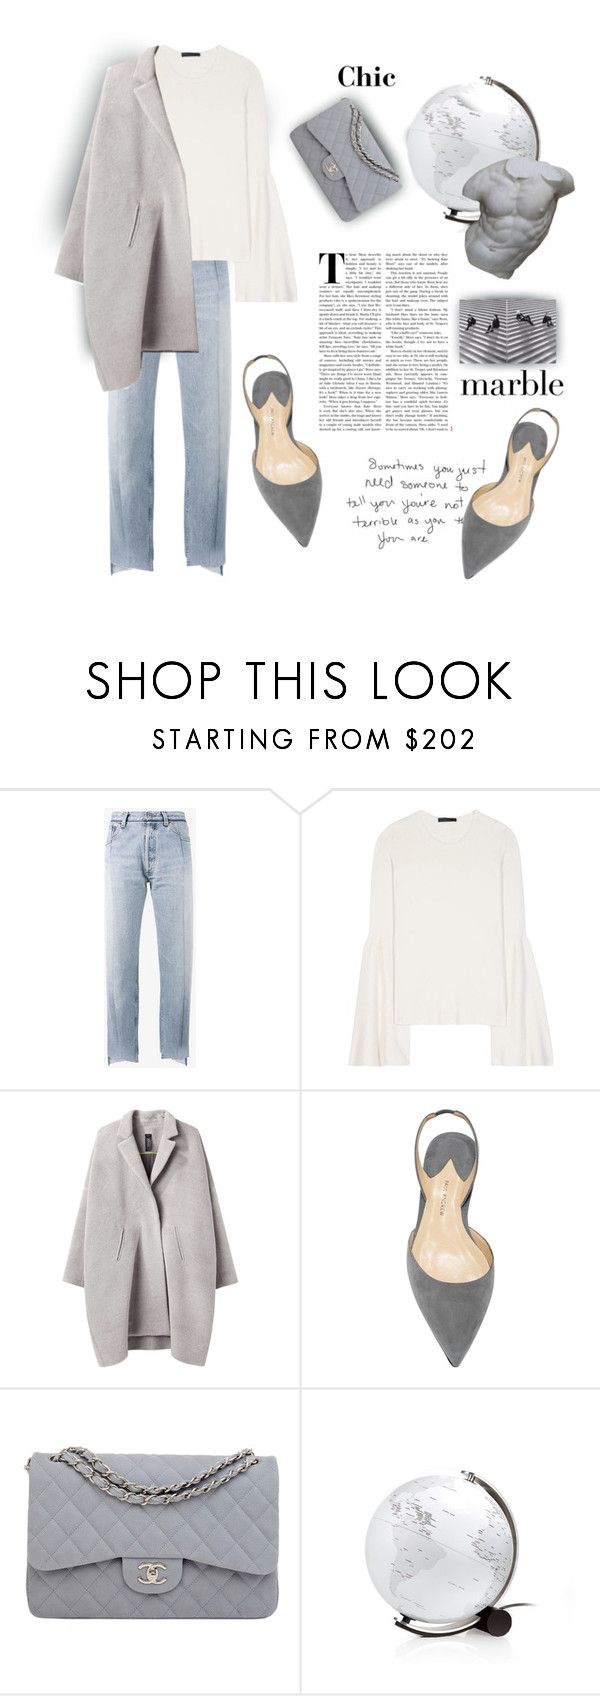 """""""Marble Chic"""" by kallimanis ❤ liked on Polyvore featuring Vetements, The Row, Zero + Maria Cornejo, Chanel and Romanelli"""